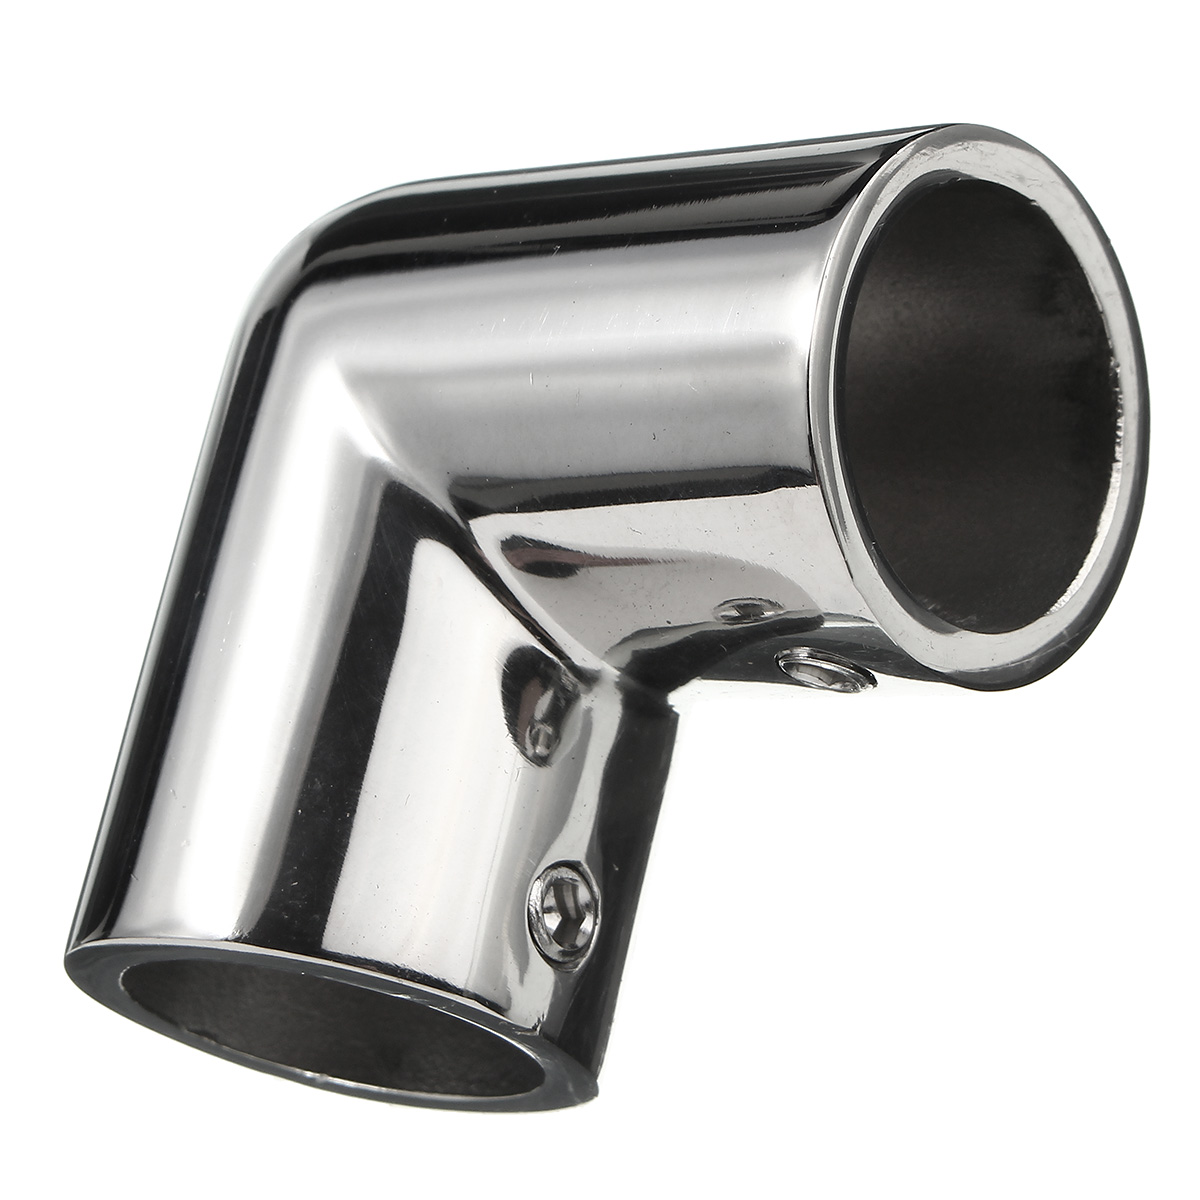 For AISI 316 Grade Stainless Steel Marine Boat Handrail 90 Degree Elbow 1 Tub